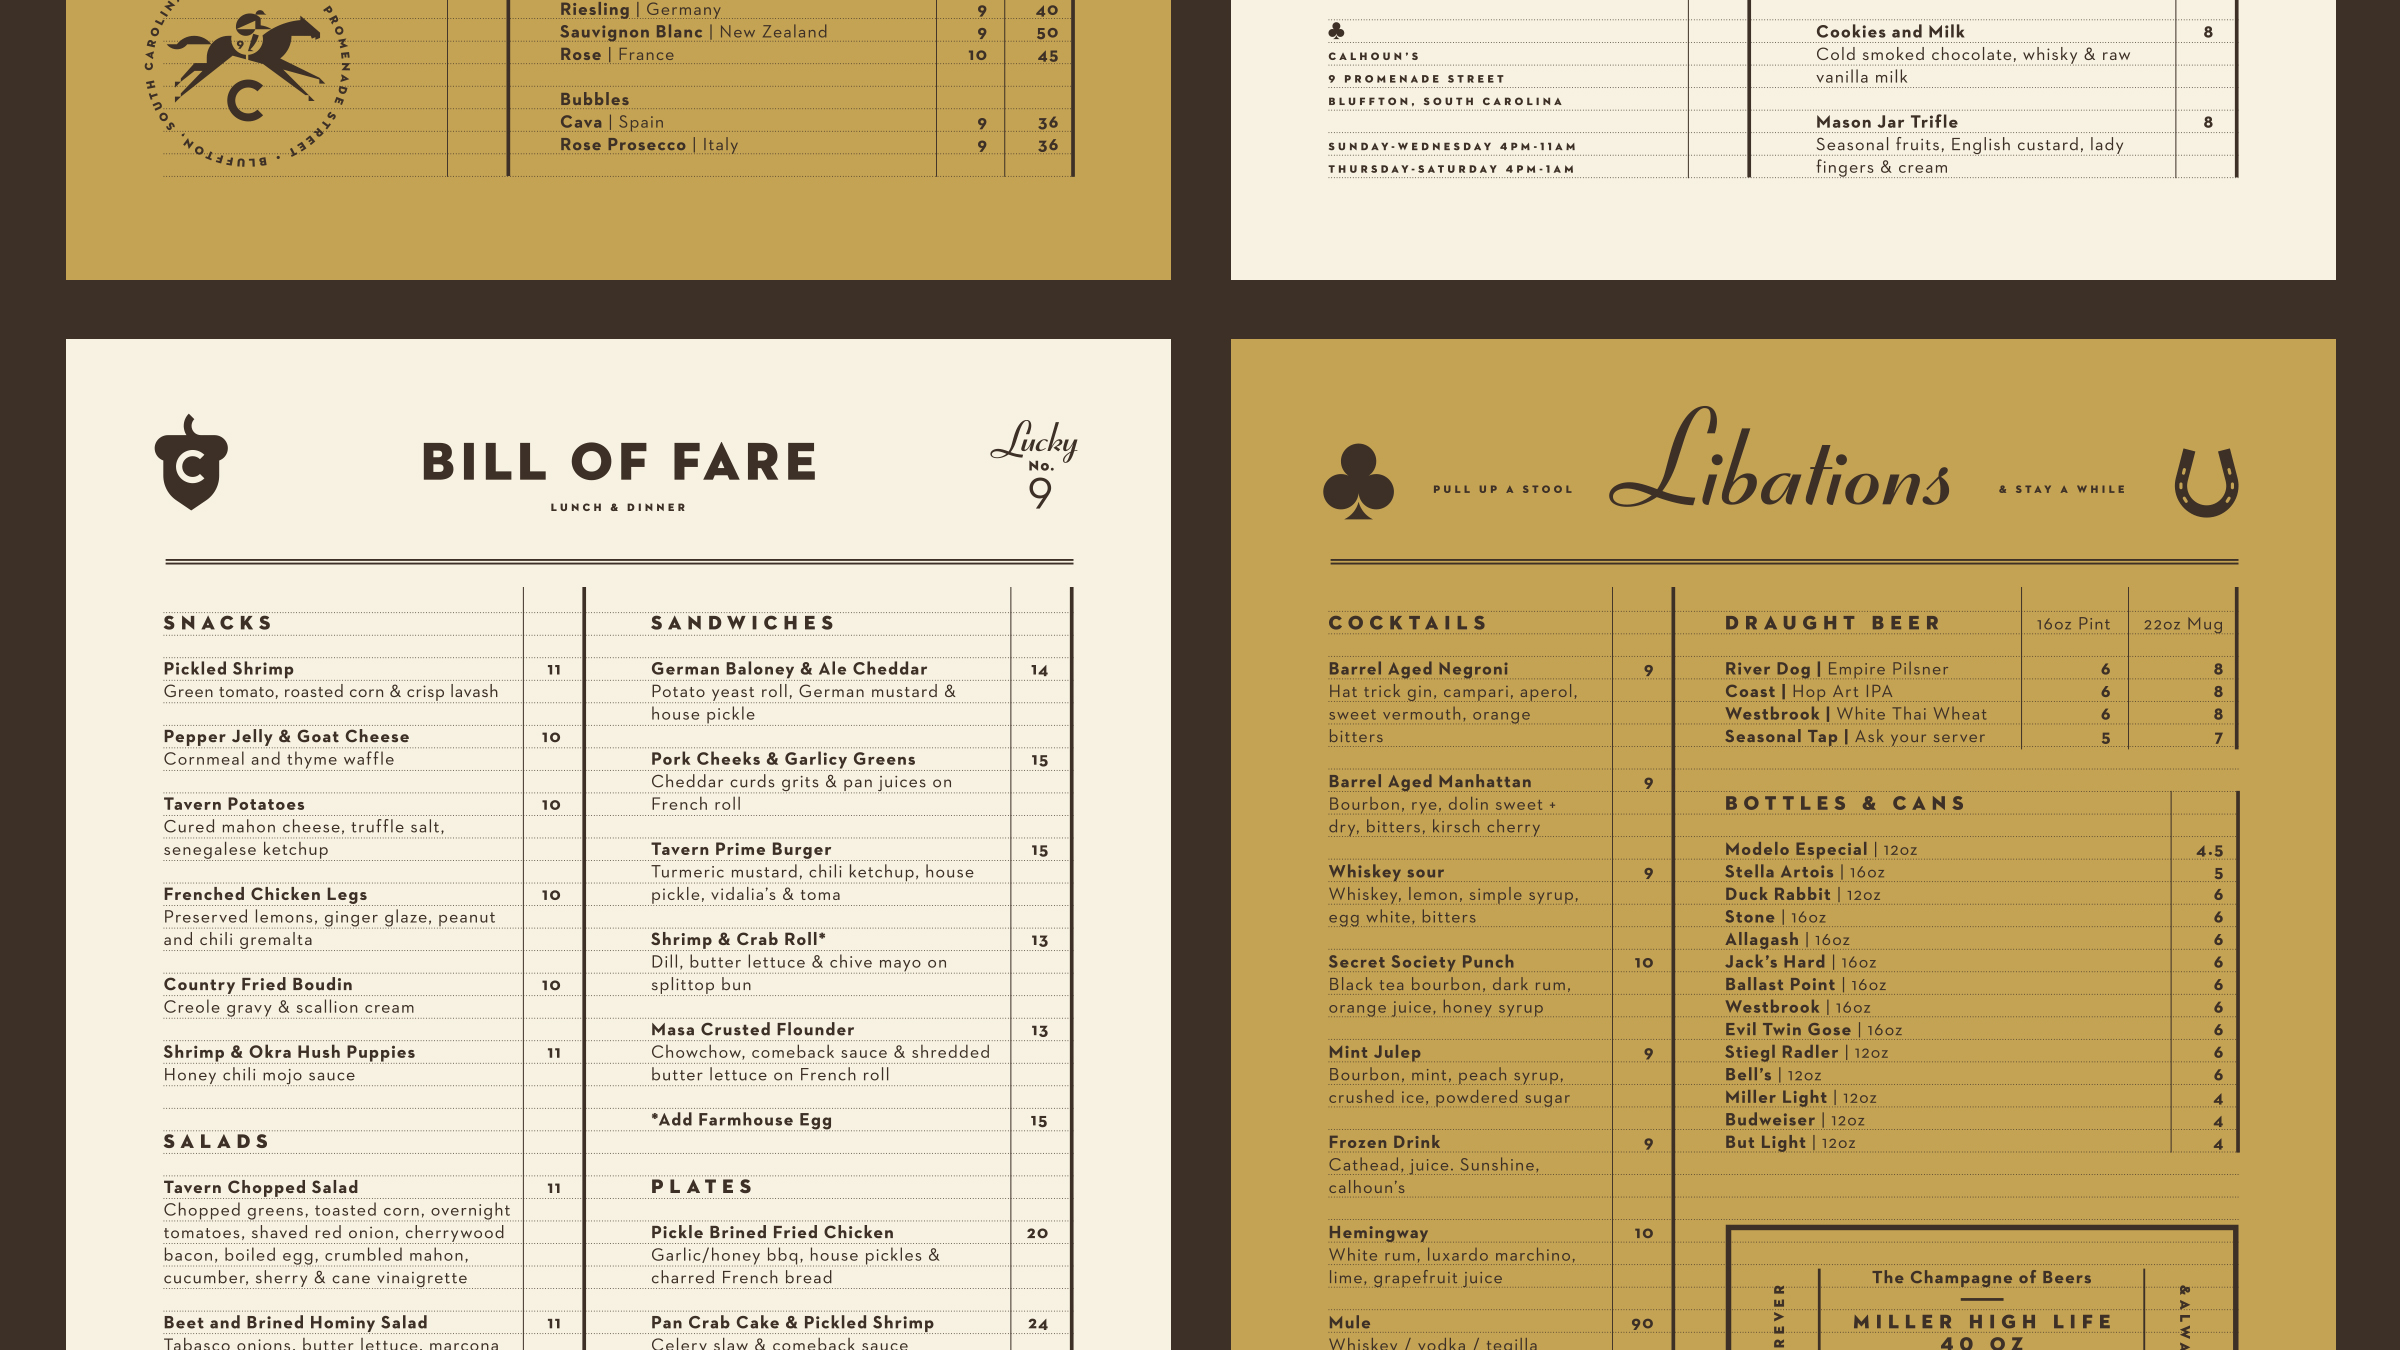 Calhoun's Bluffton Food, Cocktail and Beer Menus